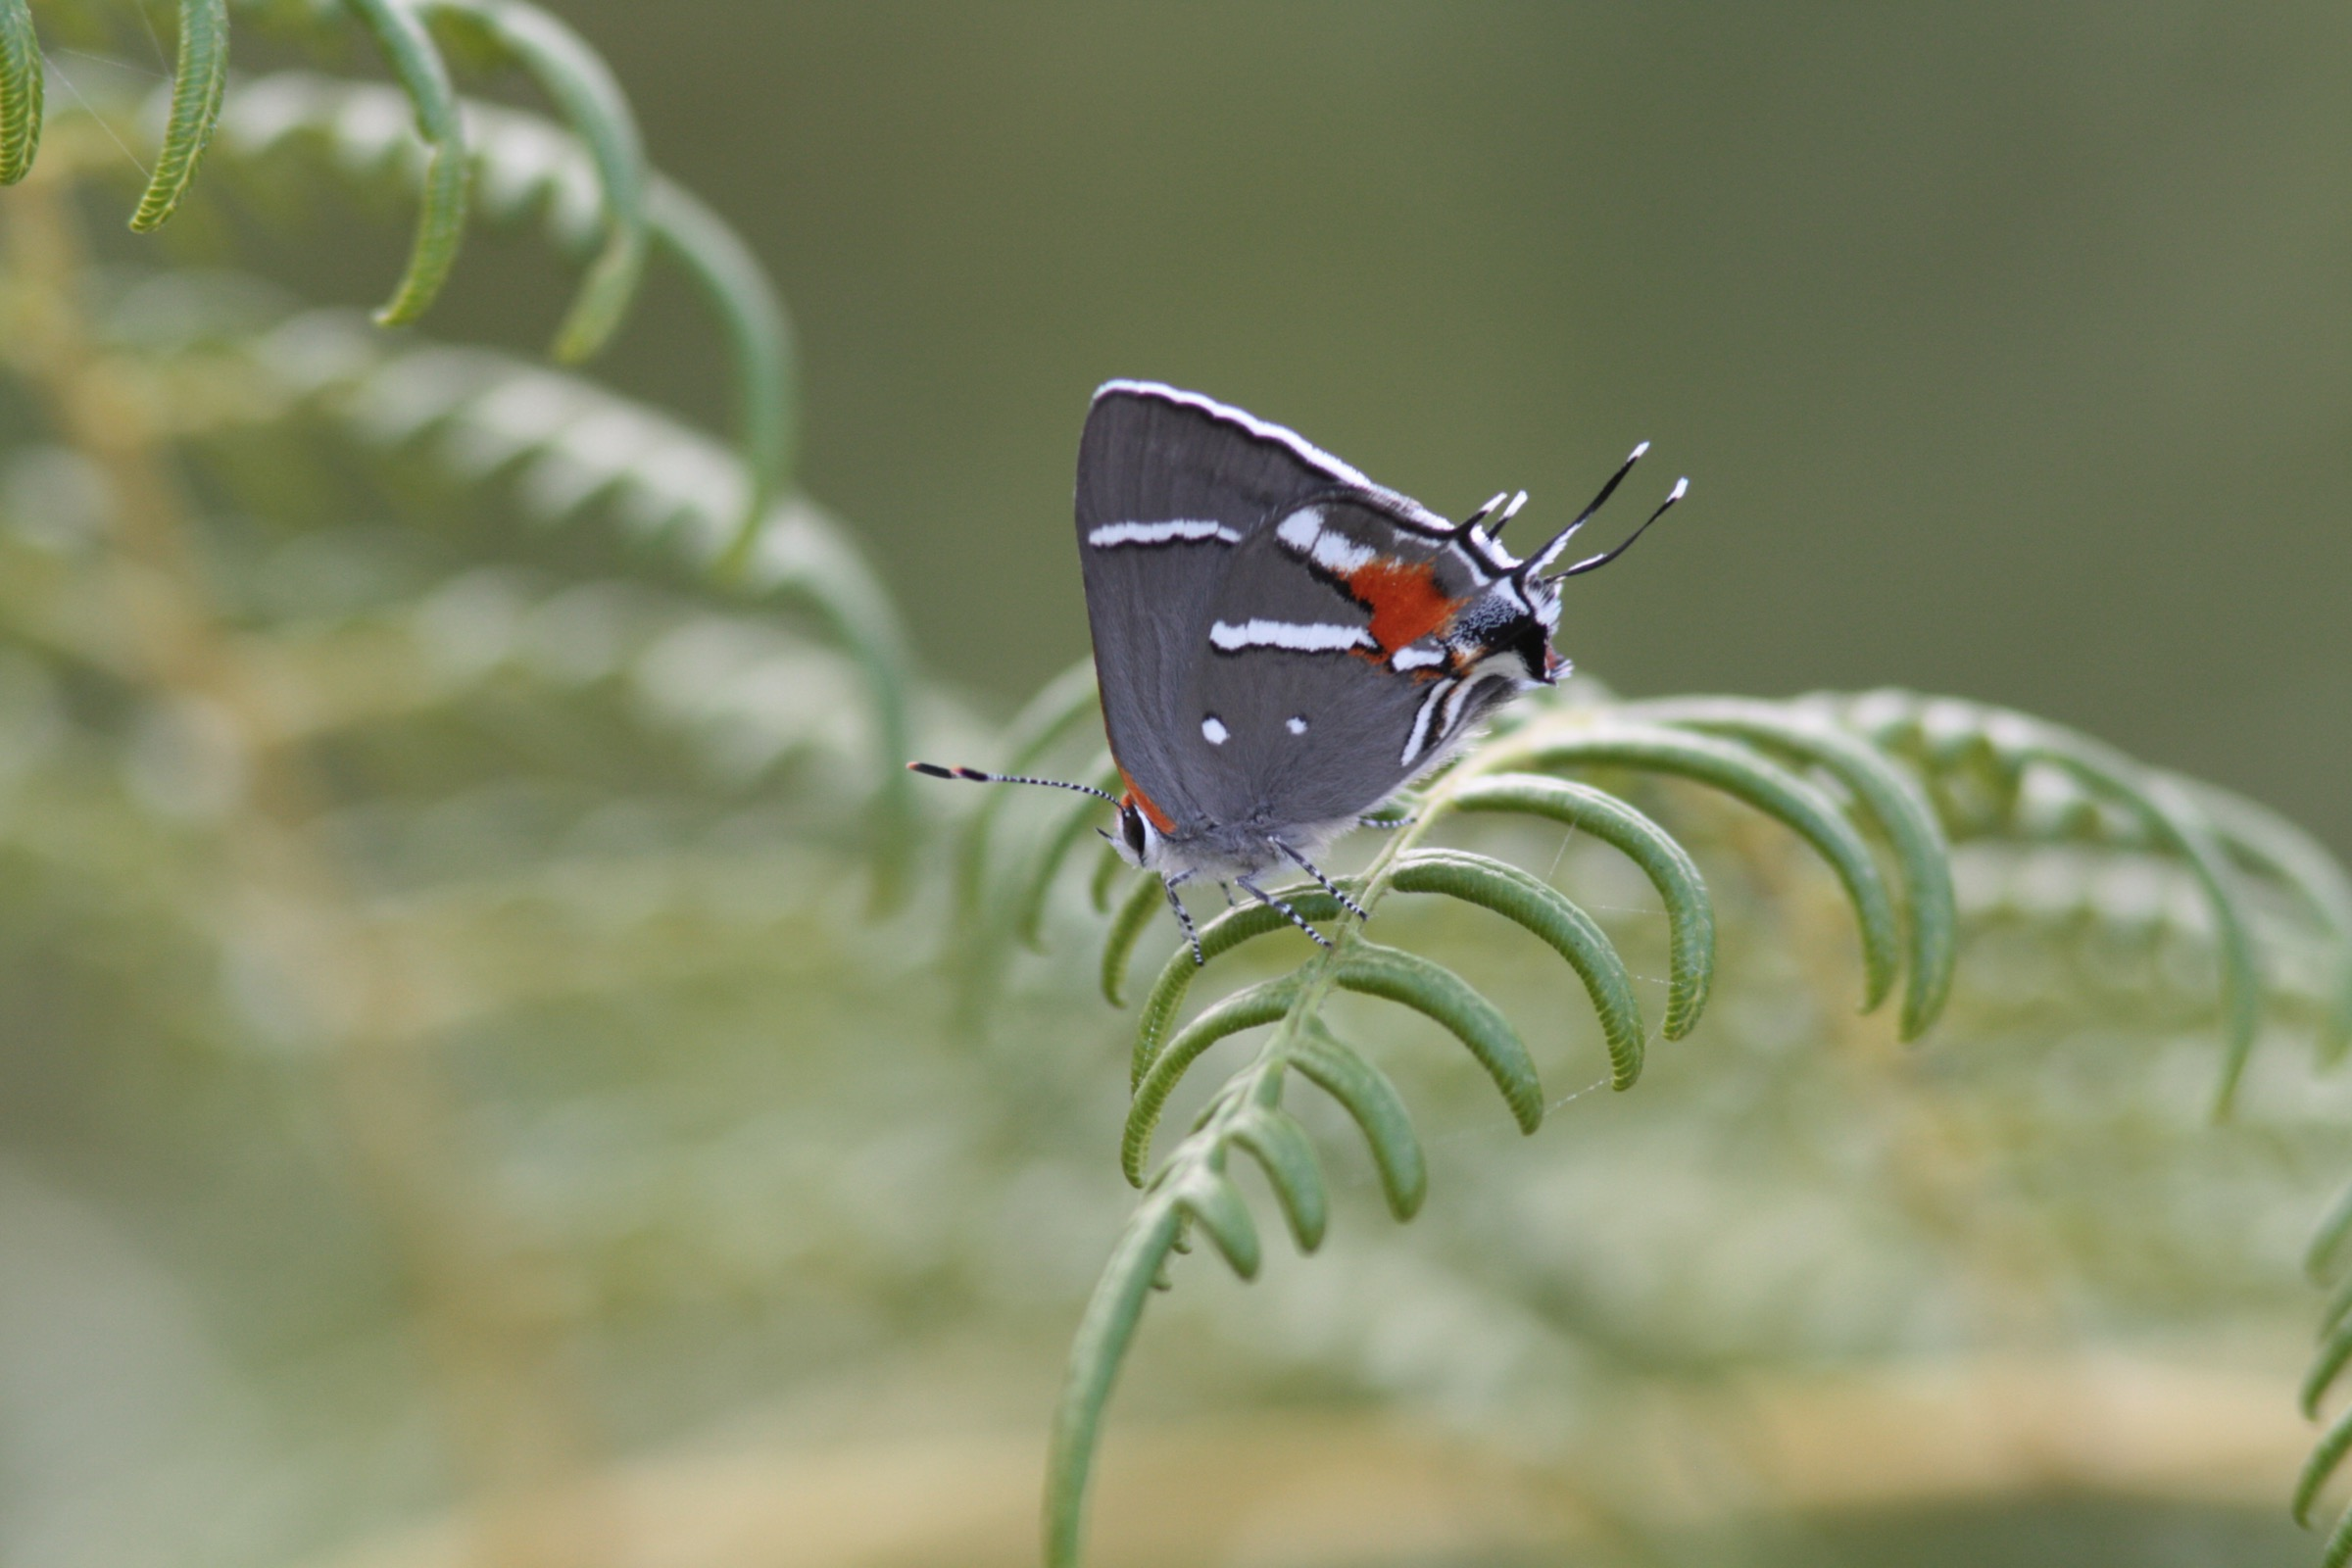 The Bartram's scrub hairstreak butterfly (Strymon acis bartrami) exists only in the pine rockland habitat of South Florida, an ecosystem that has been decimated by development in recent decades. Photograph by Chad Anderson